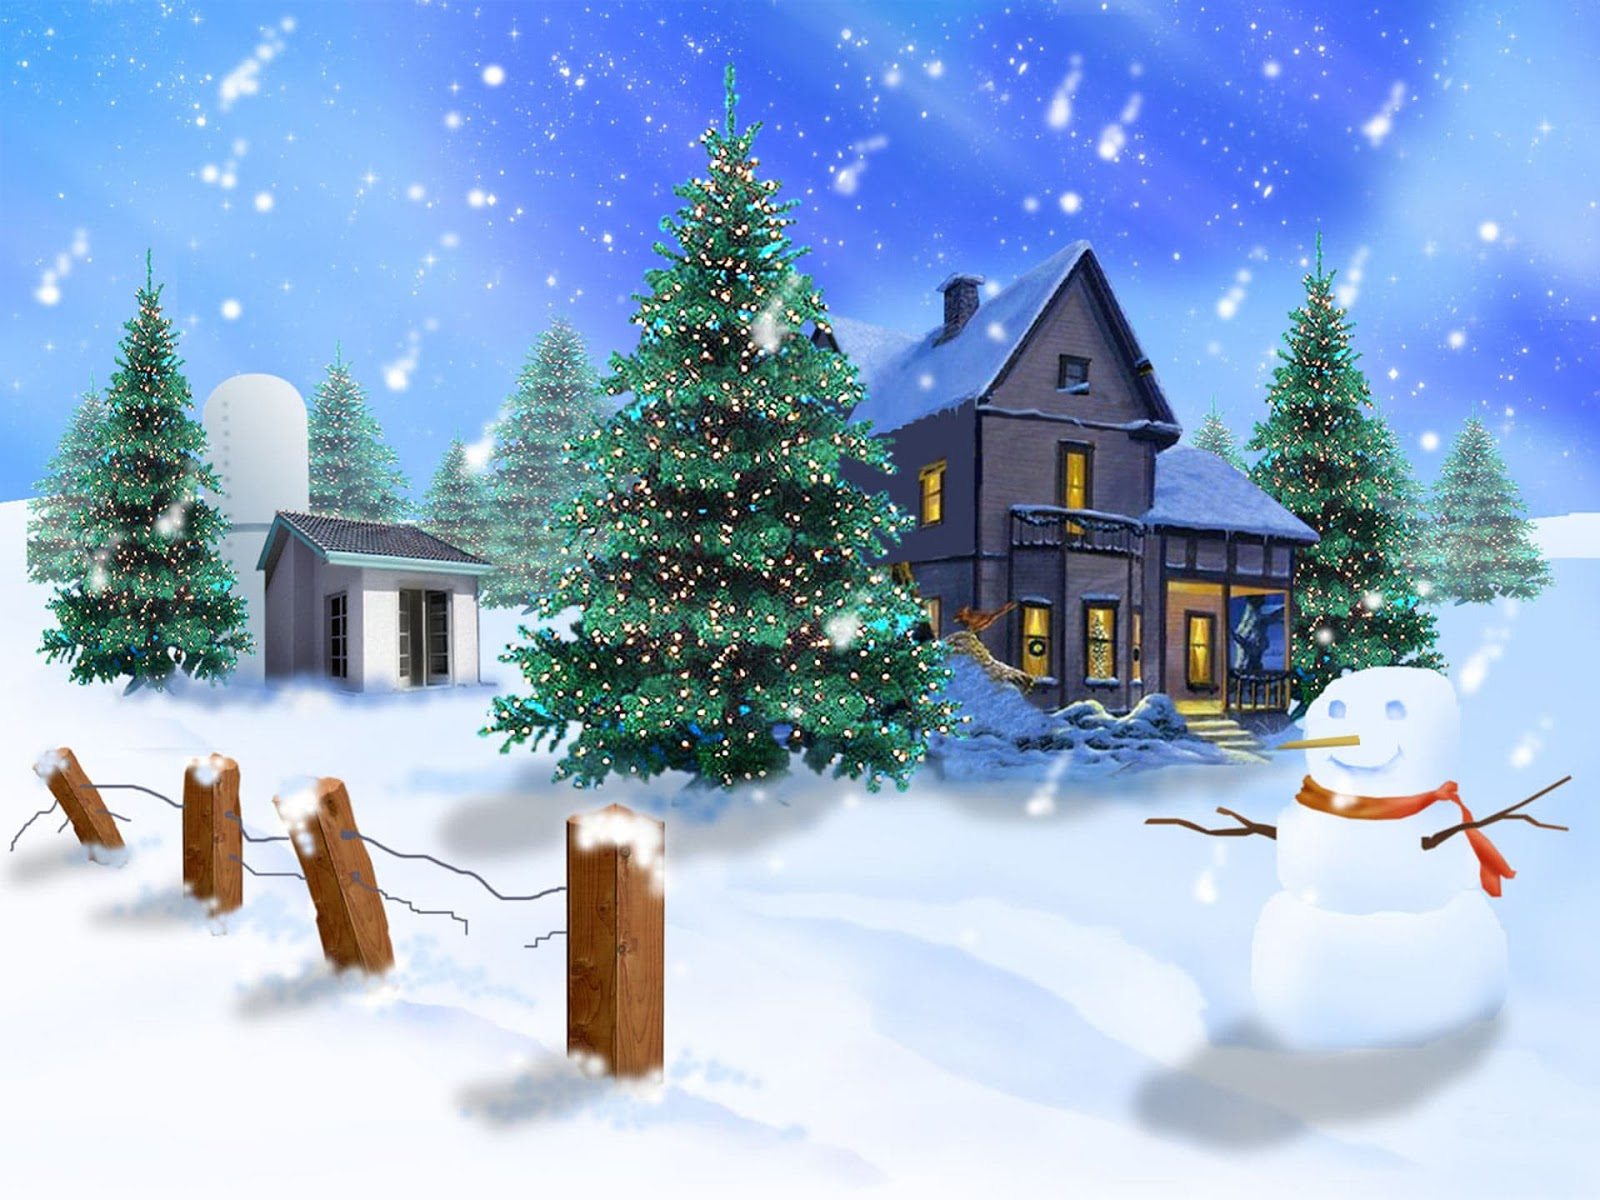 Merry Christmas Wallpapers 6